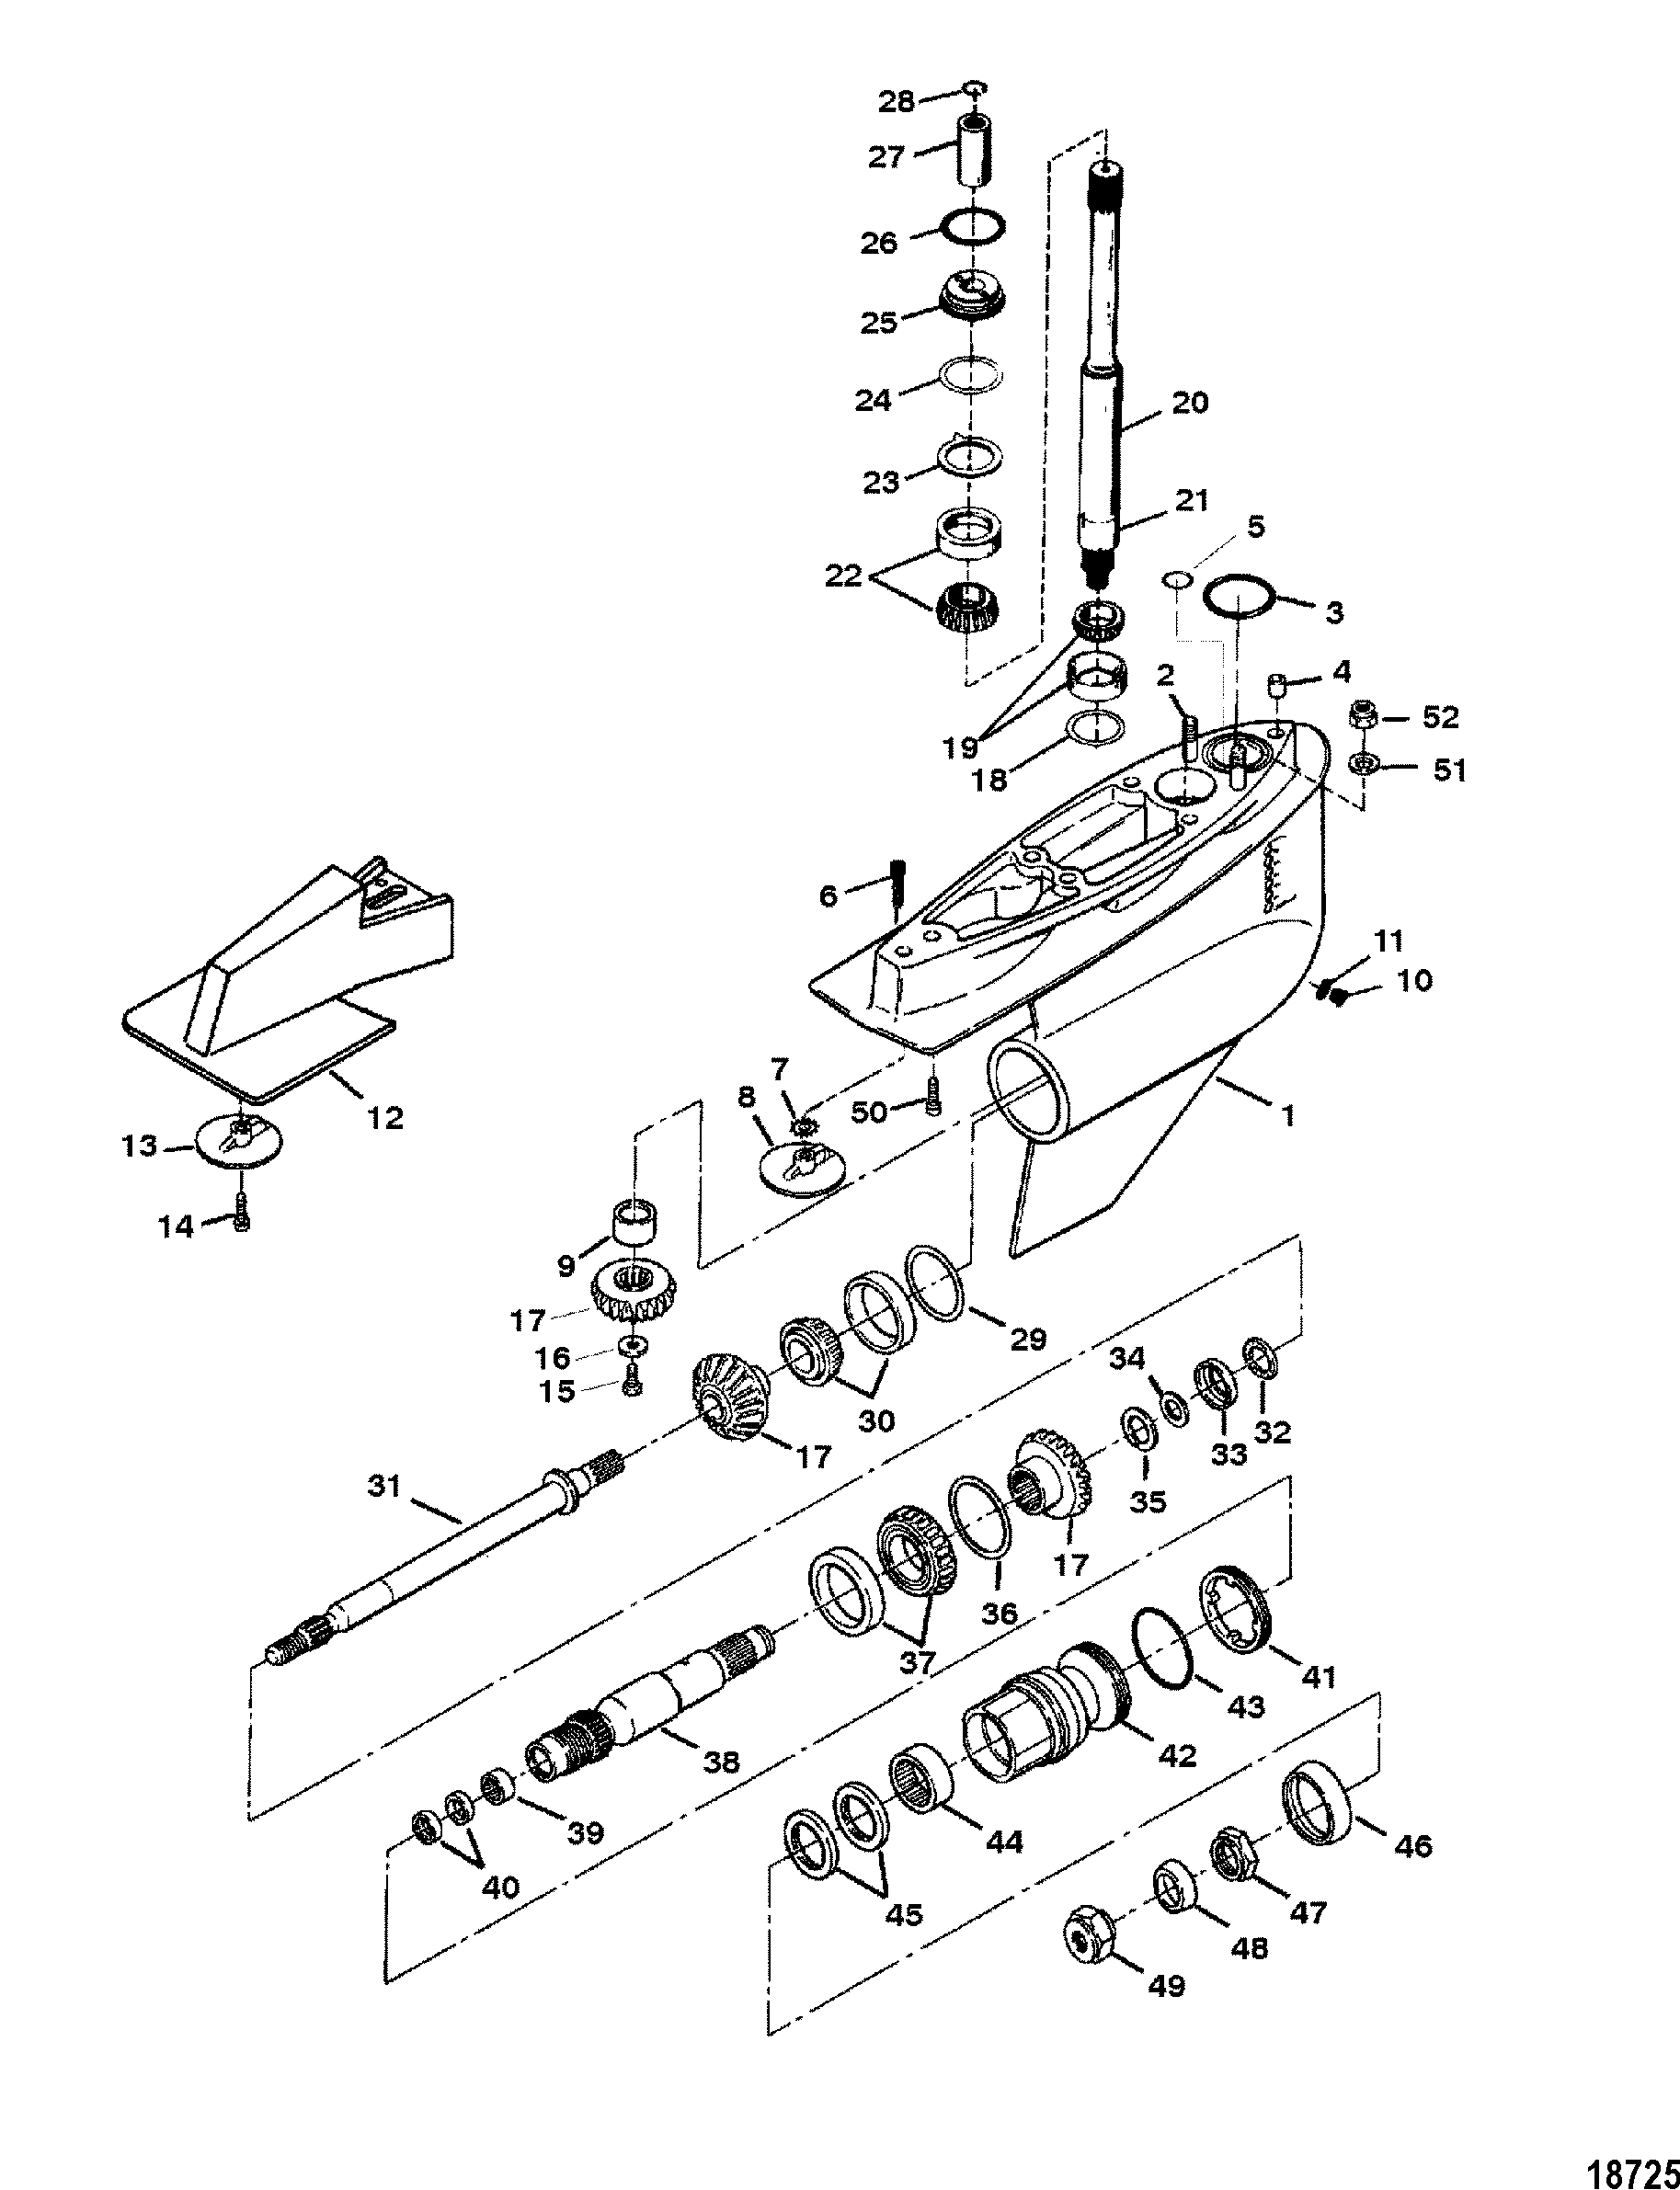 GEAR HOUSING(BRAVO III) FOR MERCRUISER BRAVO I/II/III STERNDRIVE AND  TRANSOM ASSEMBLY